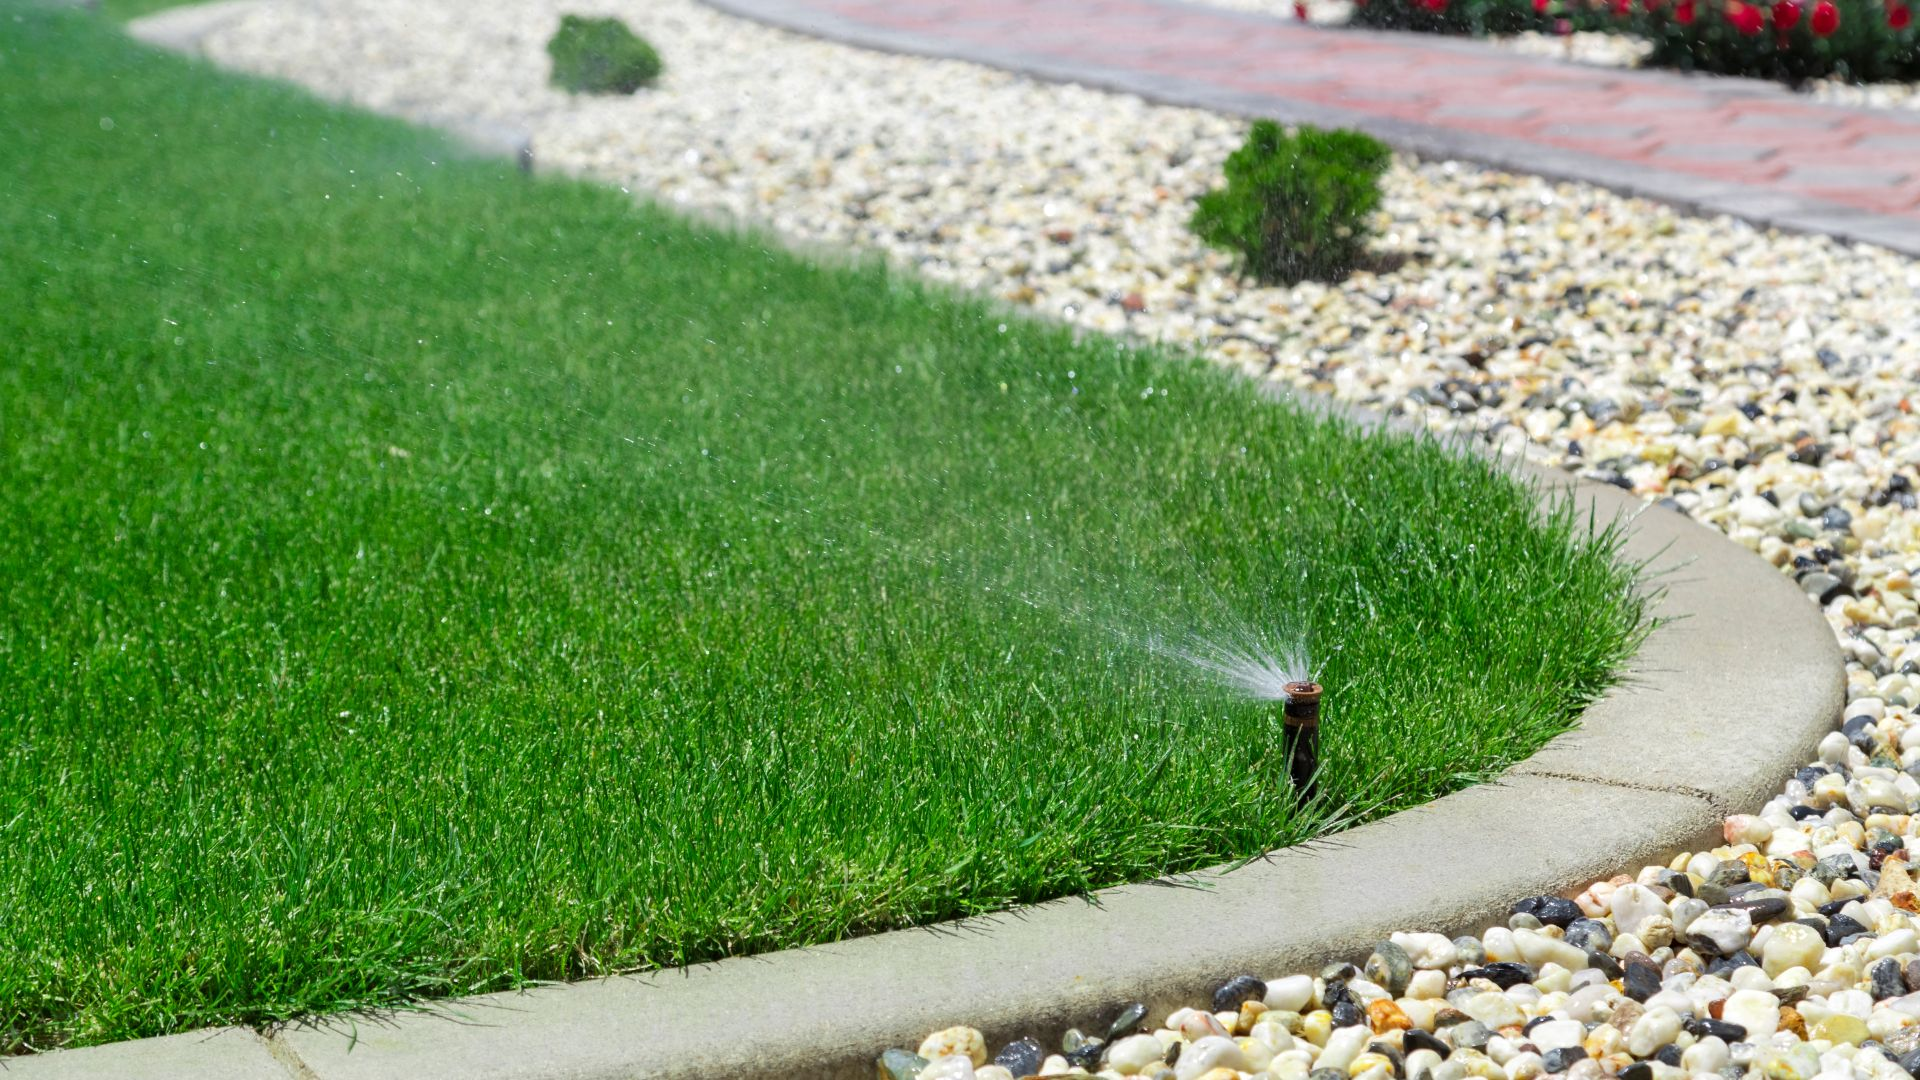 Irrigation system watering a home lawn.